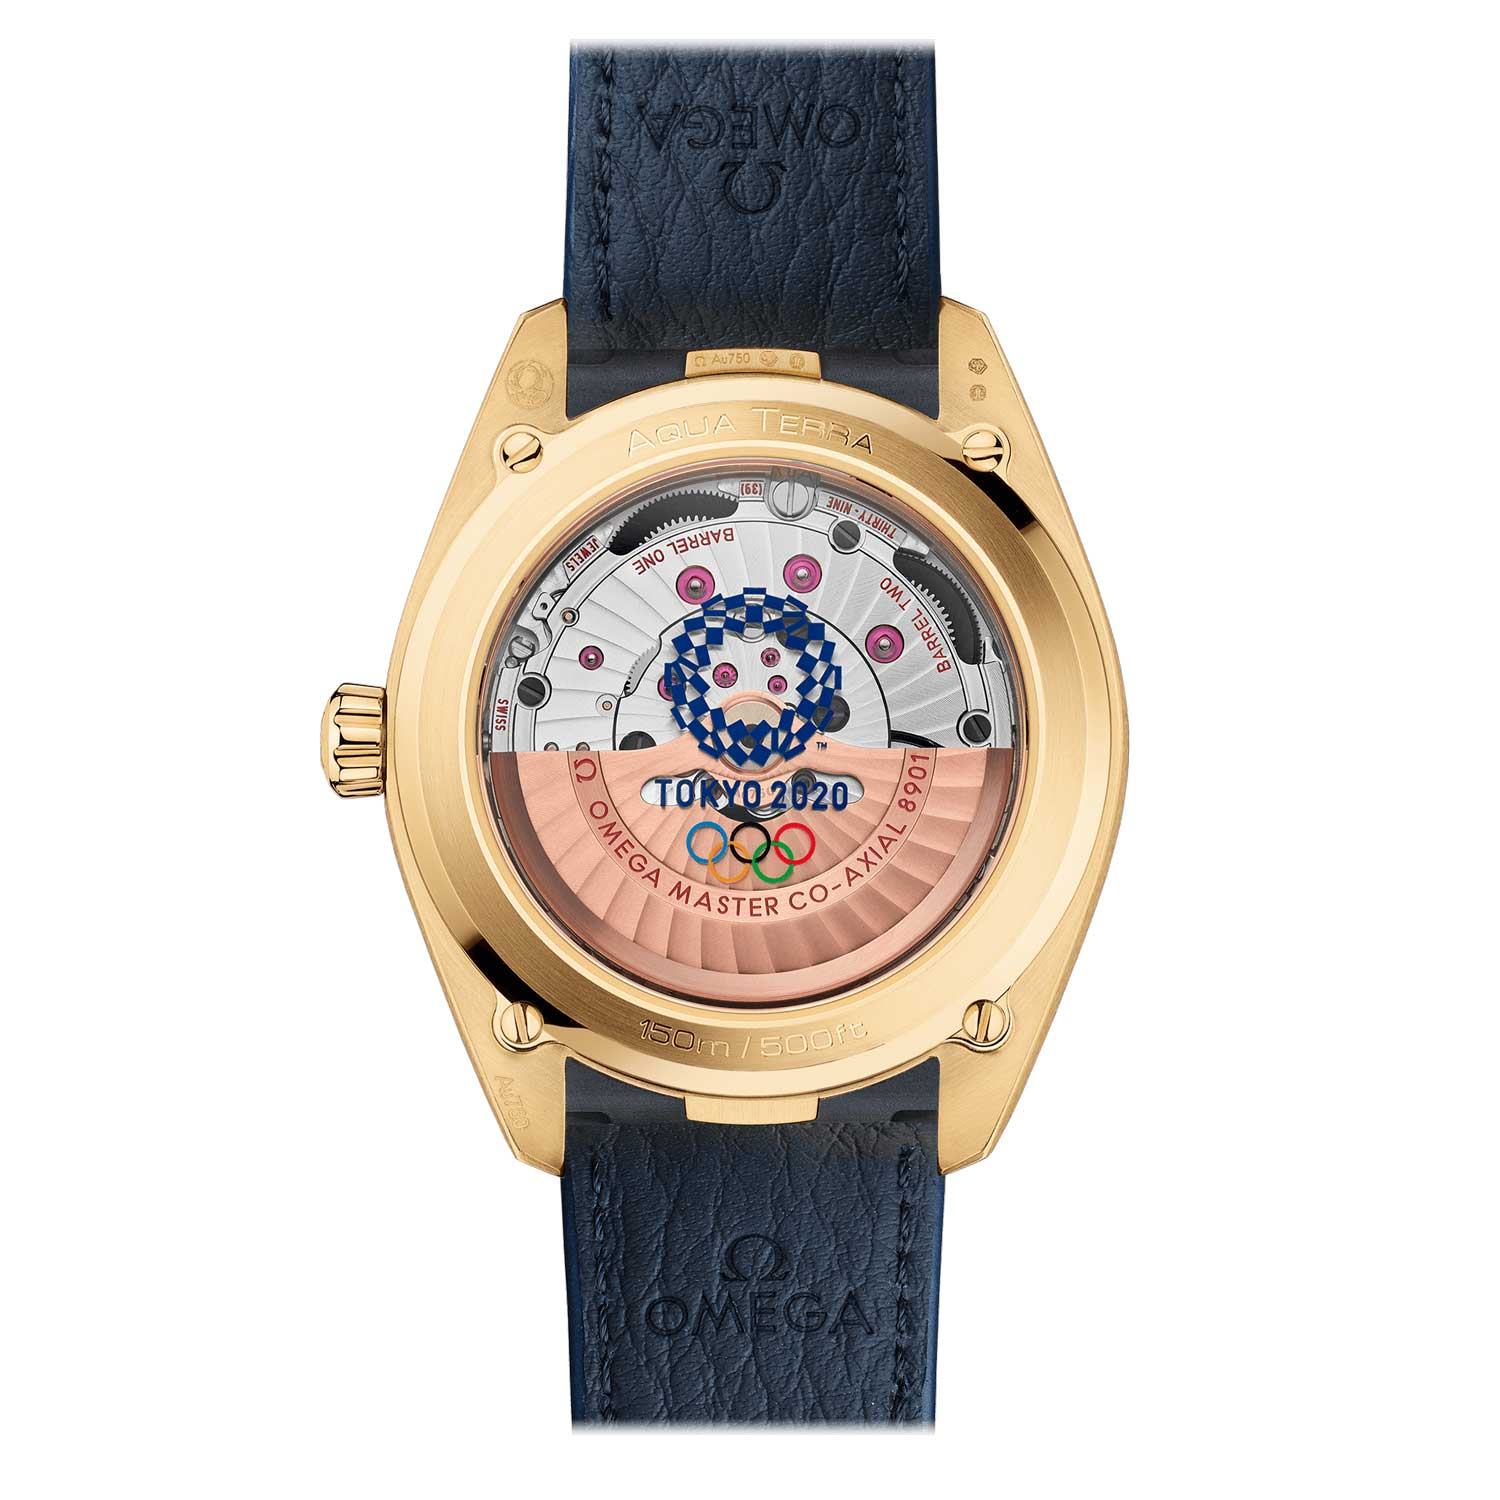 The caseback looks equally attractive with the exhibition sapphire crystals printed with the Tokyo 2020 logo, complete with a specially designed emblem made up of asymmetrical squares and rectangles.